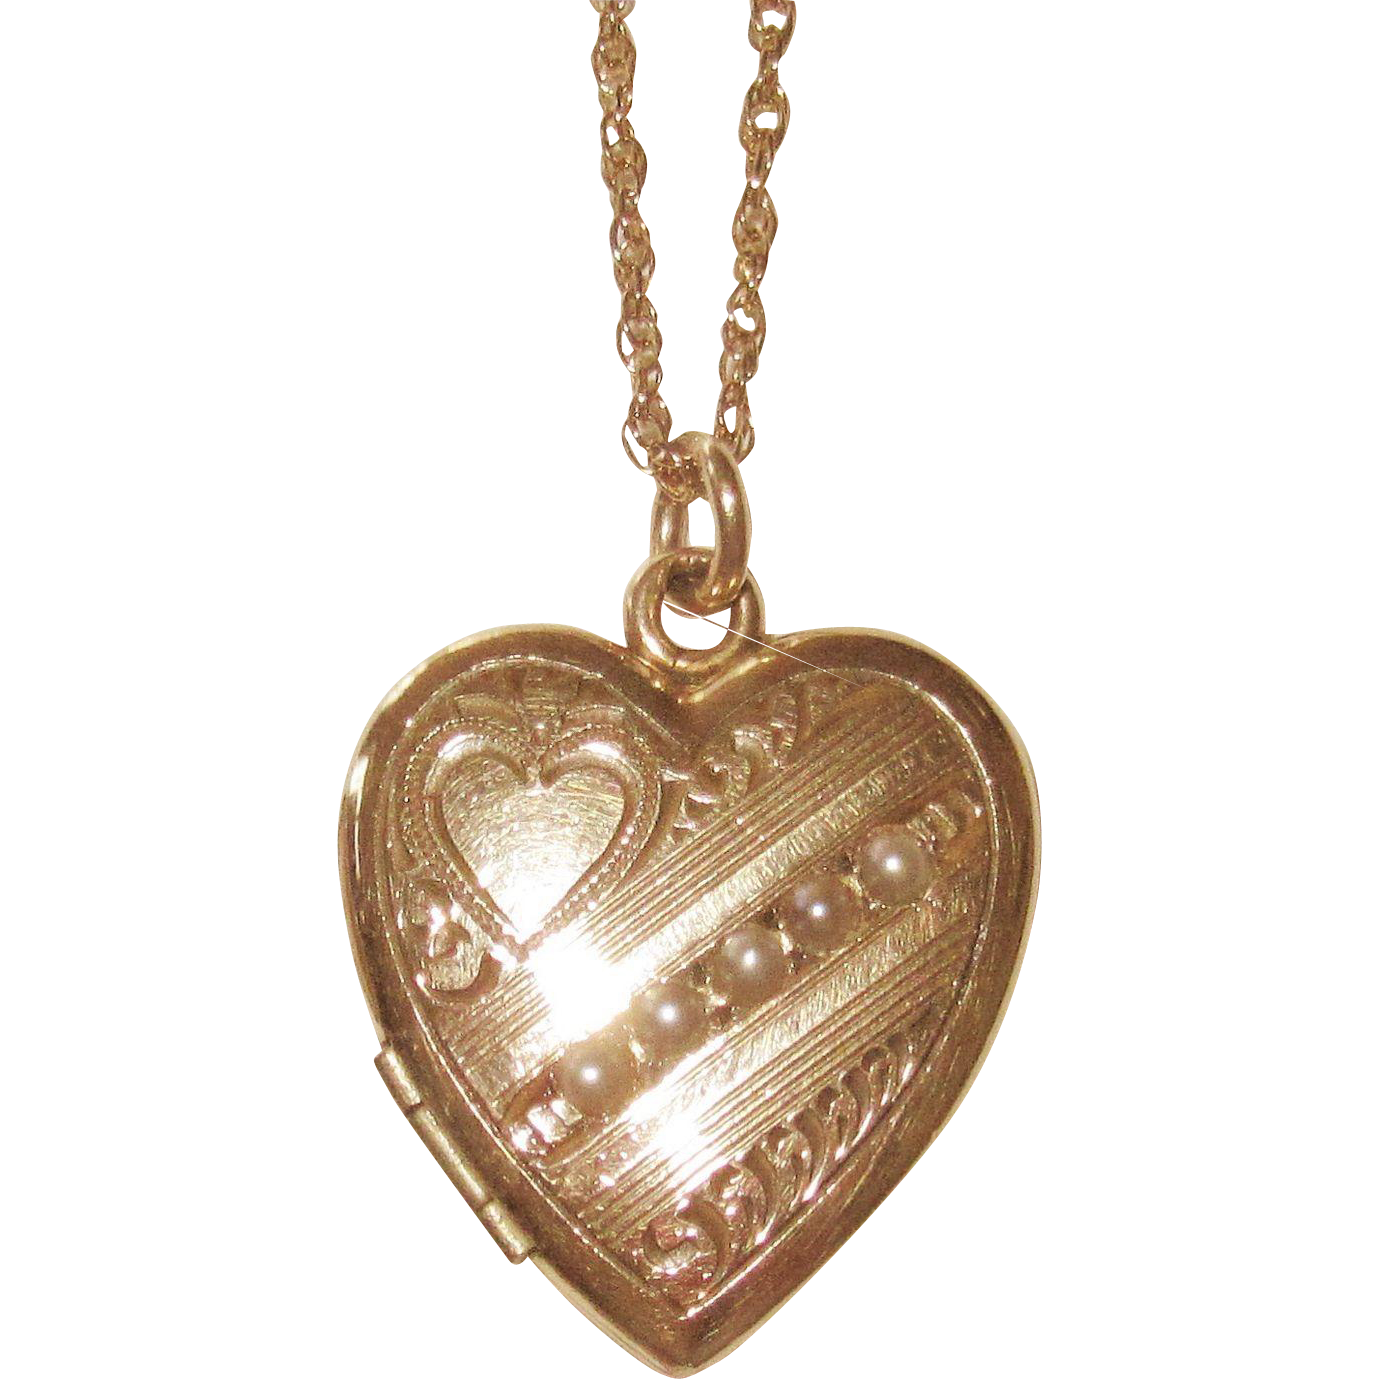 Vintage Gold Filled Heart Shaped Locket Cultured Seed Pearls